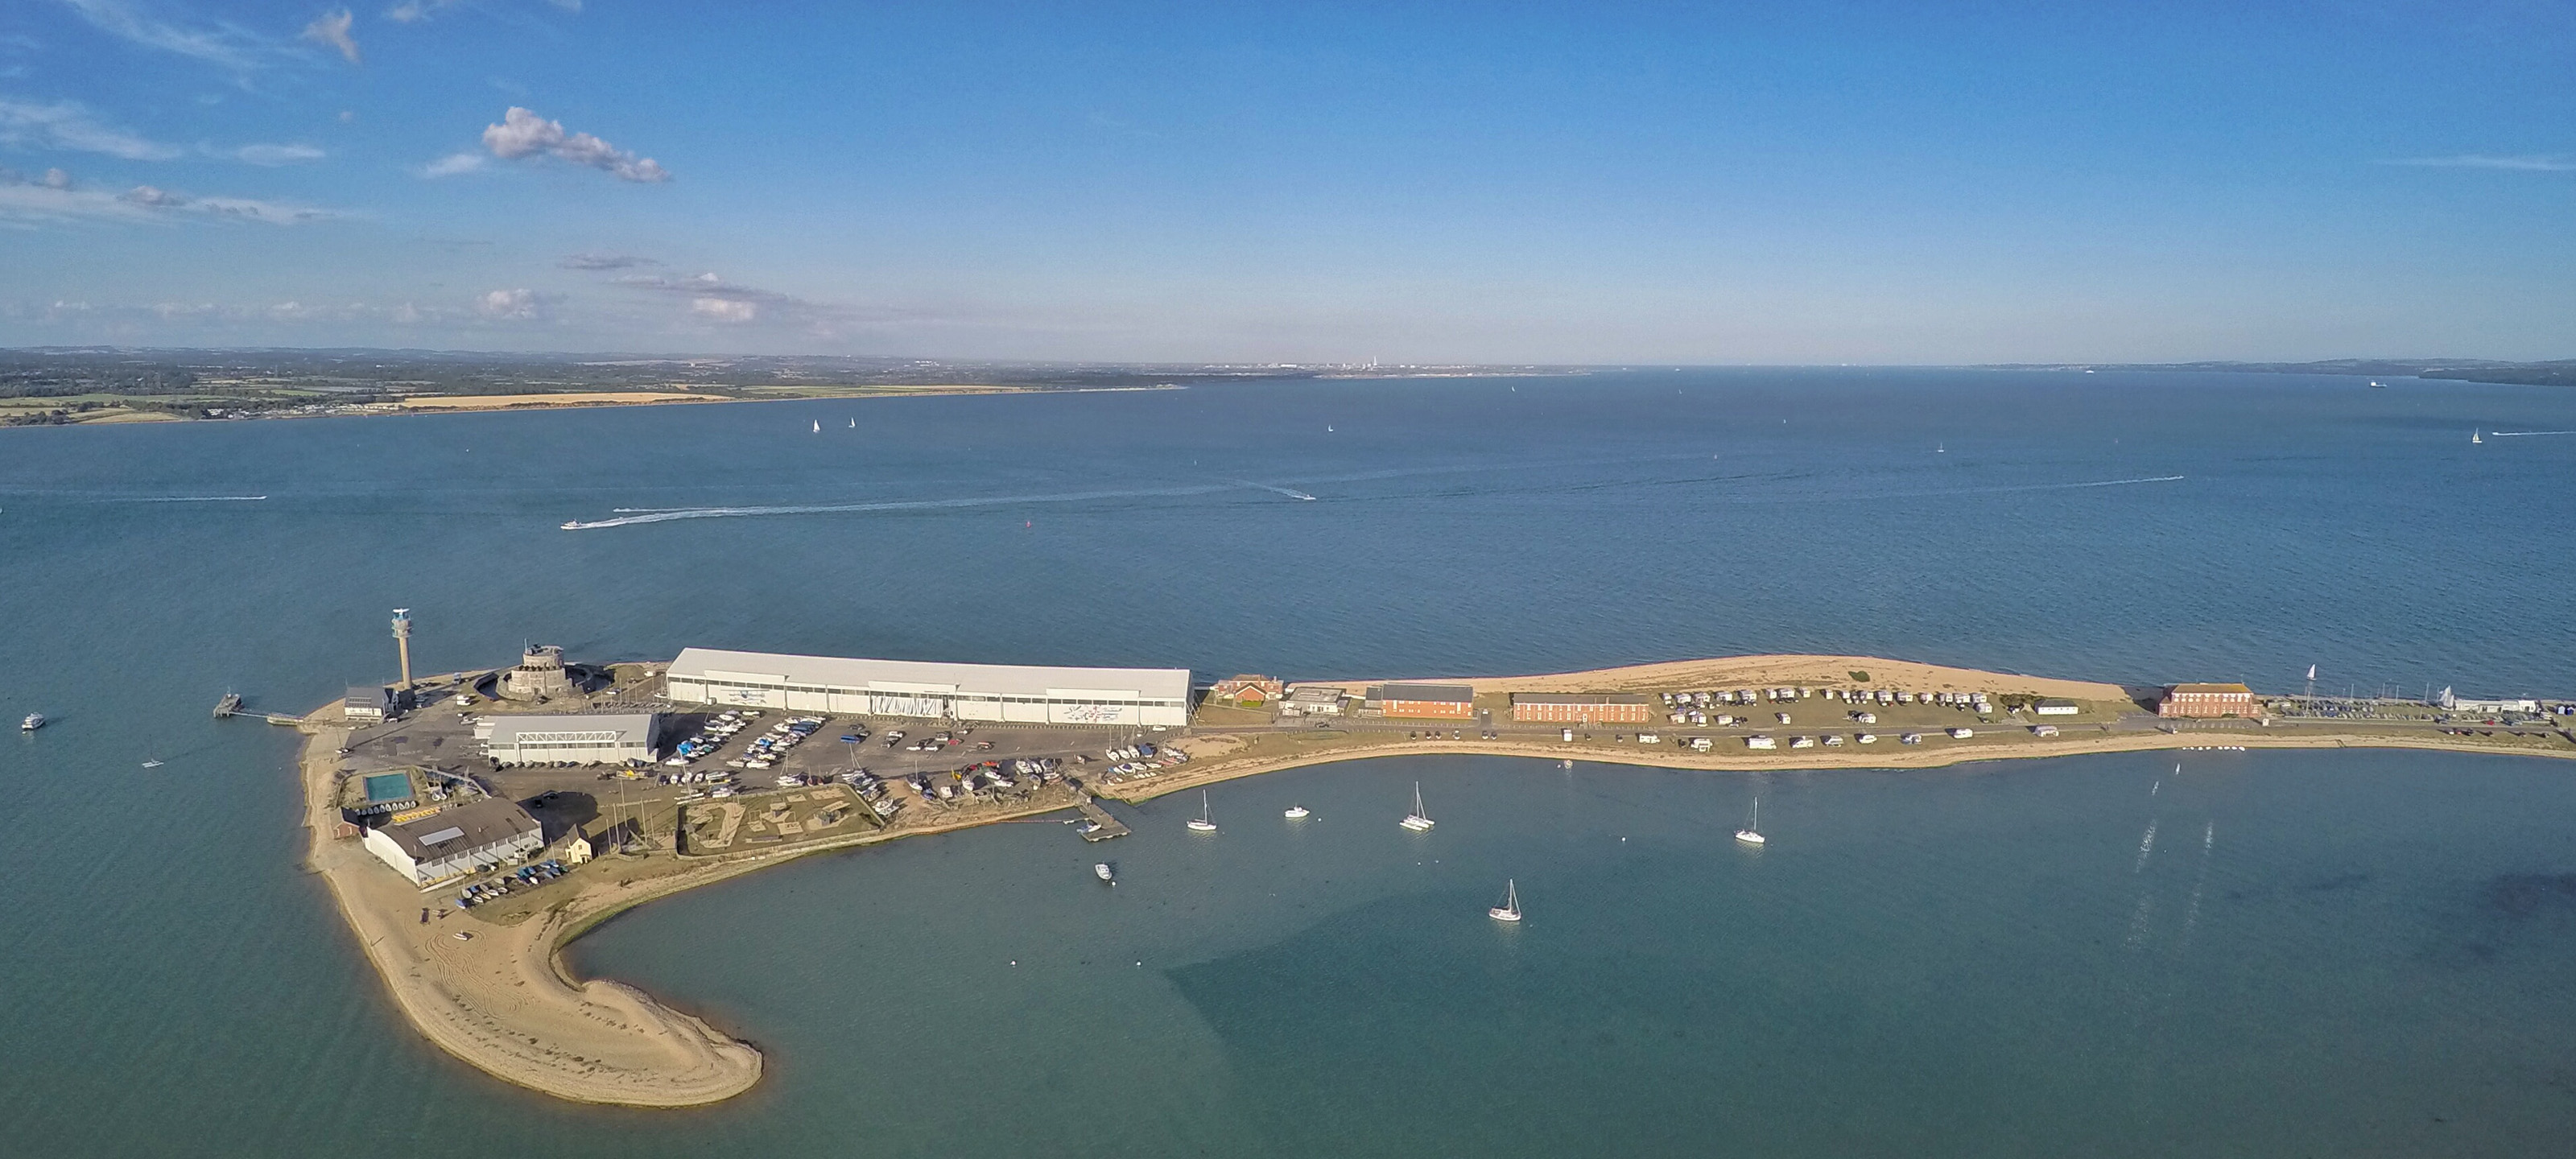 Calshot Activities Centre